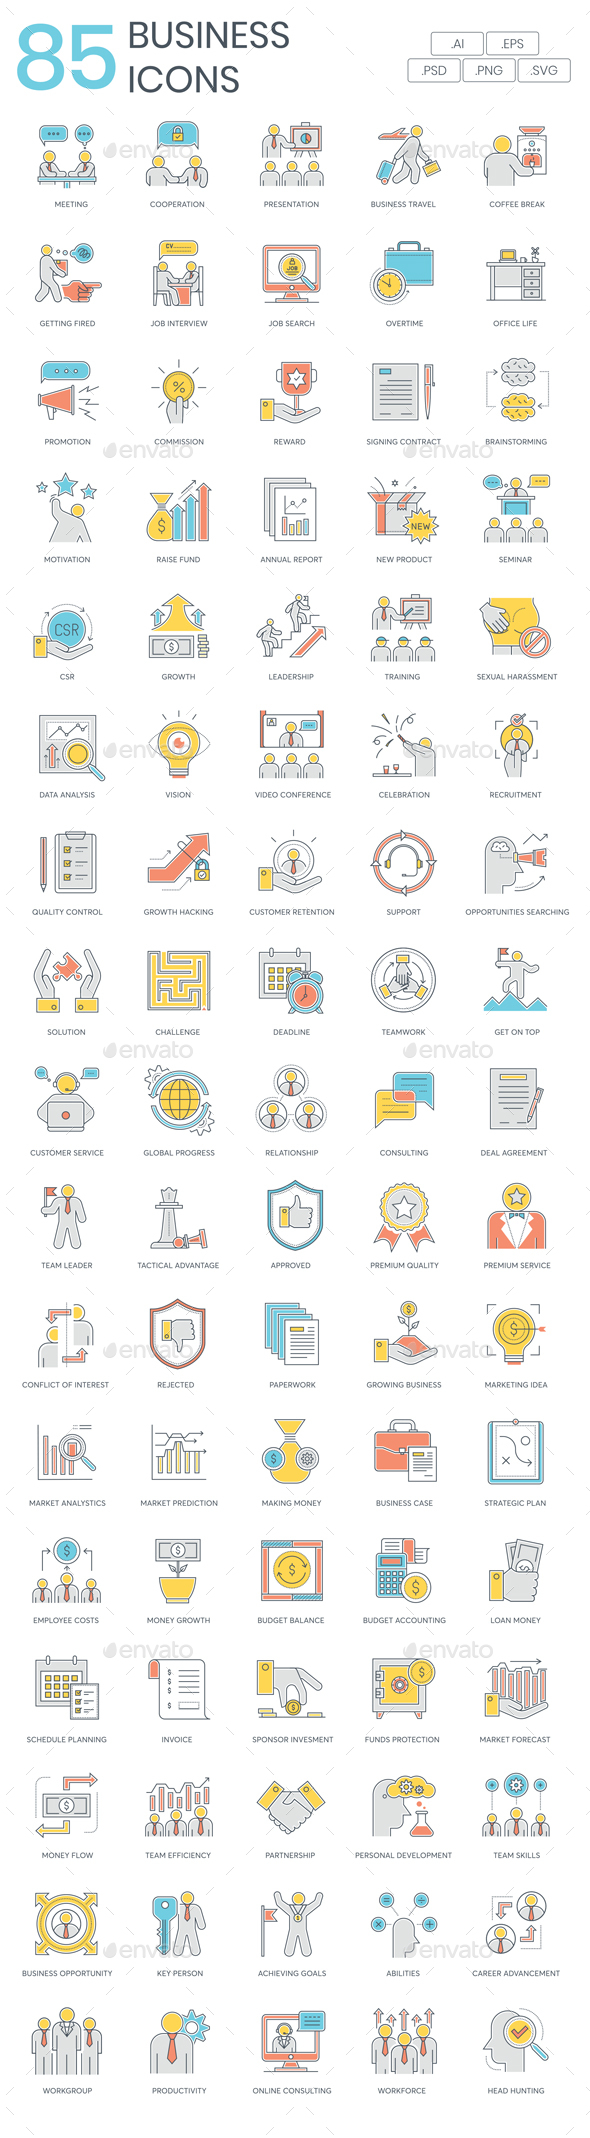 Business Icons - Color Line - Business Icons